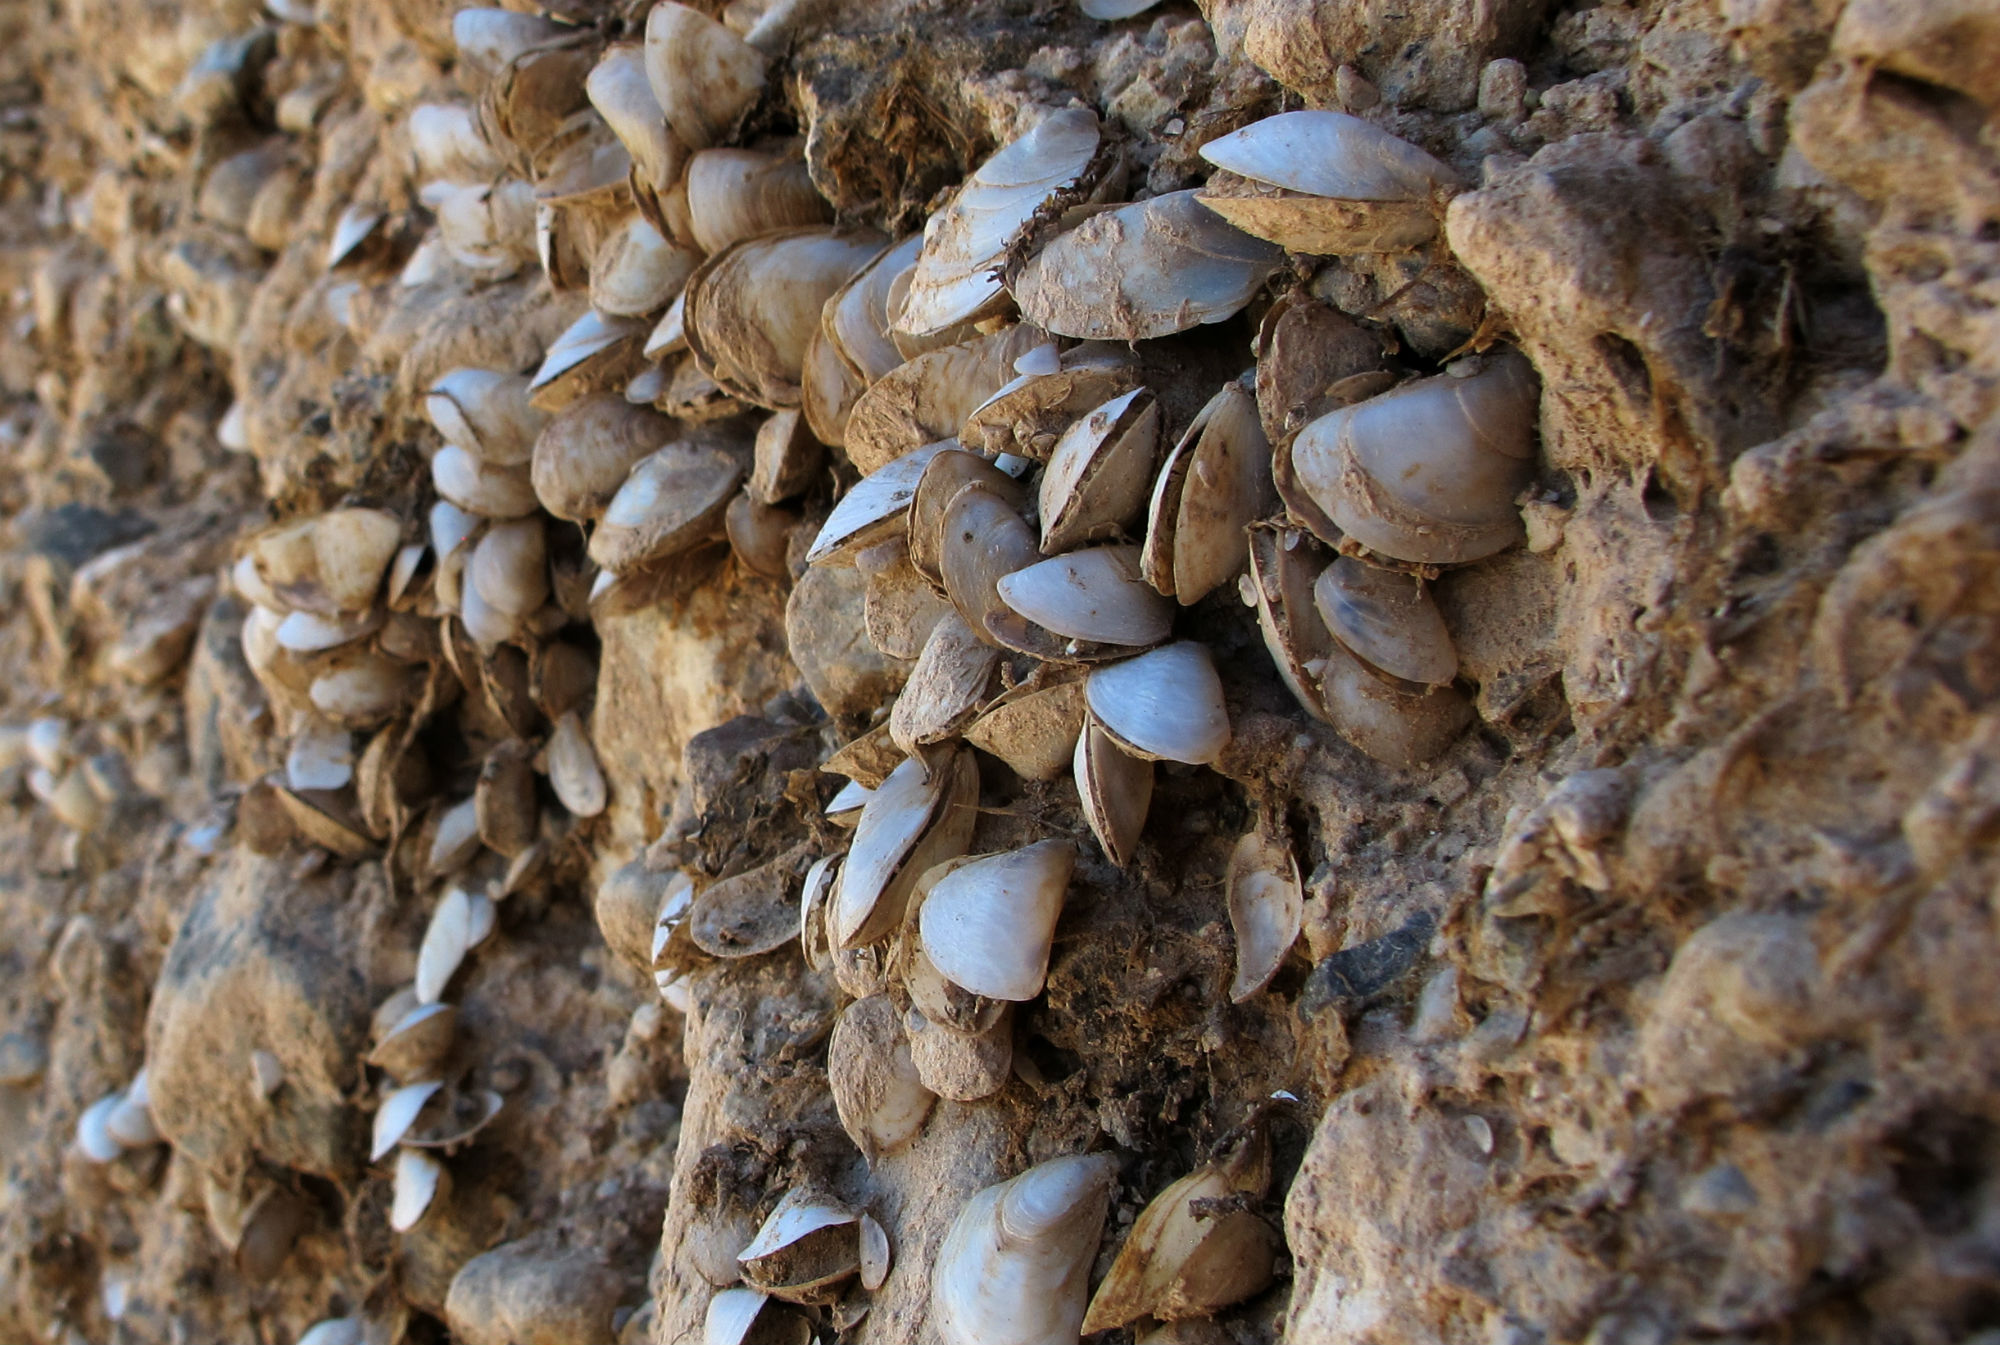 Mussels now cling to the dry lake walls on the way out to a marina on Mead's western shore, marking where water levels once rose.